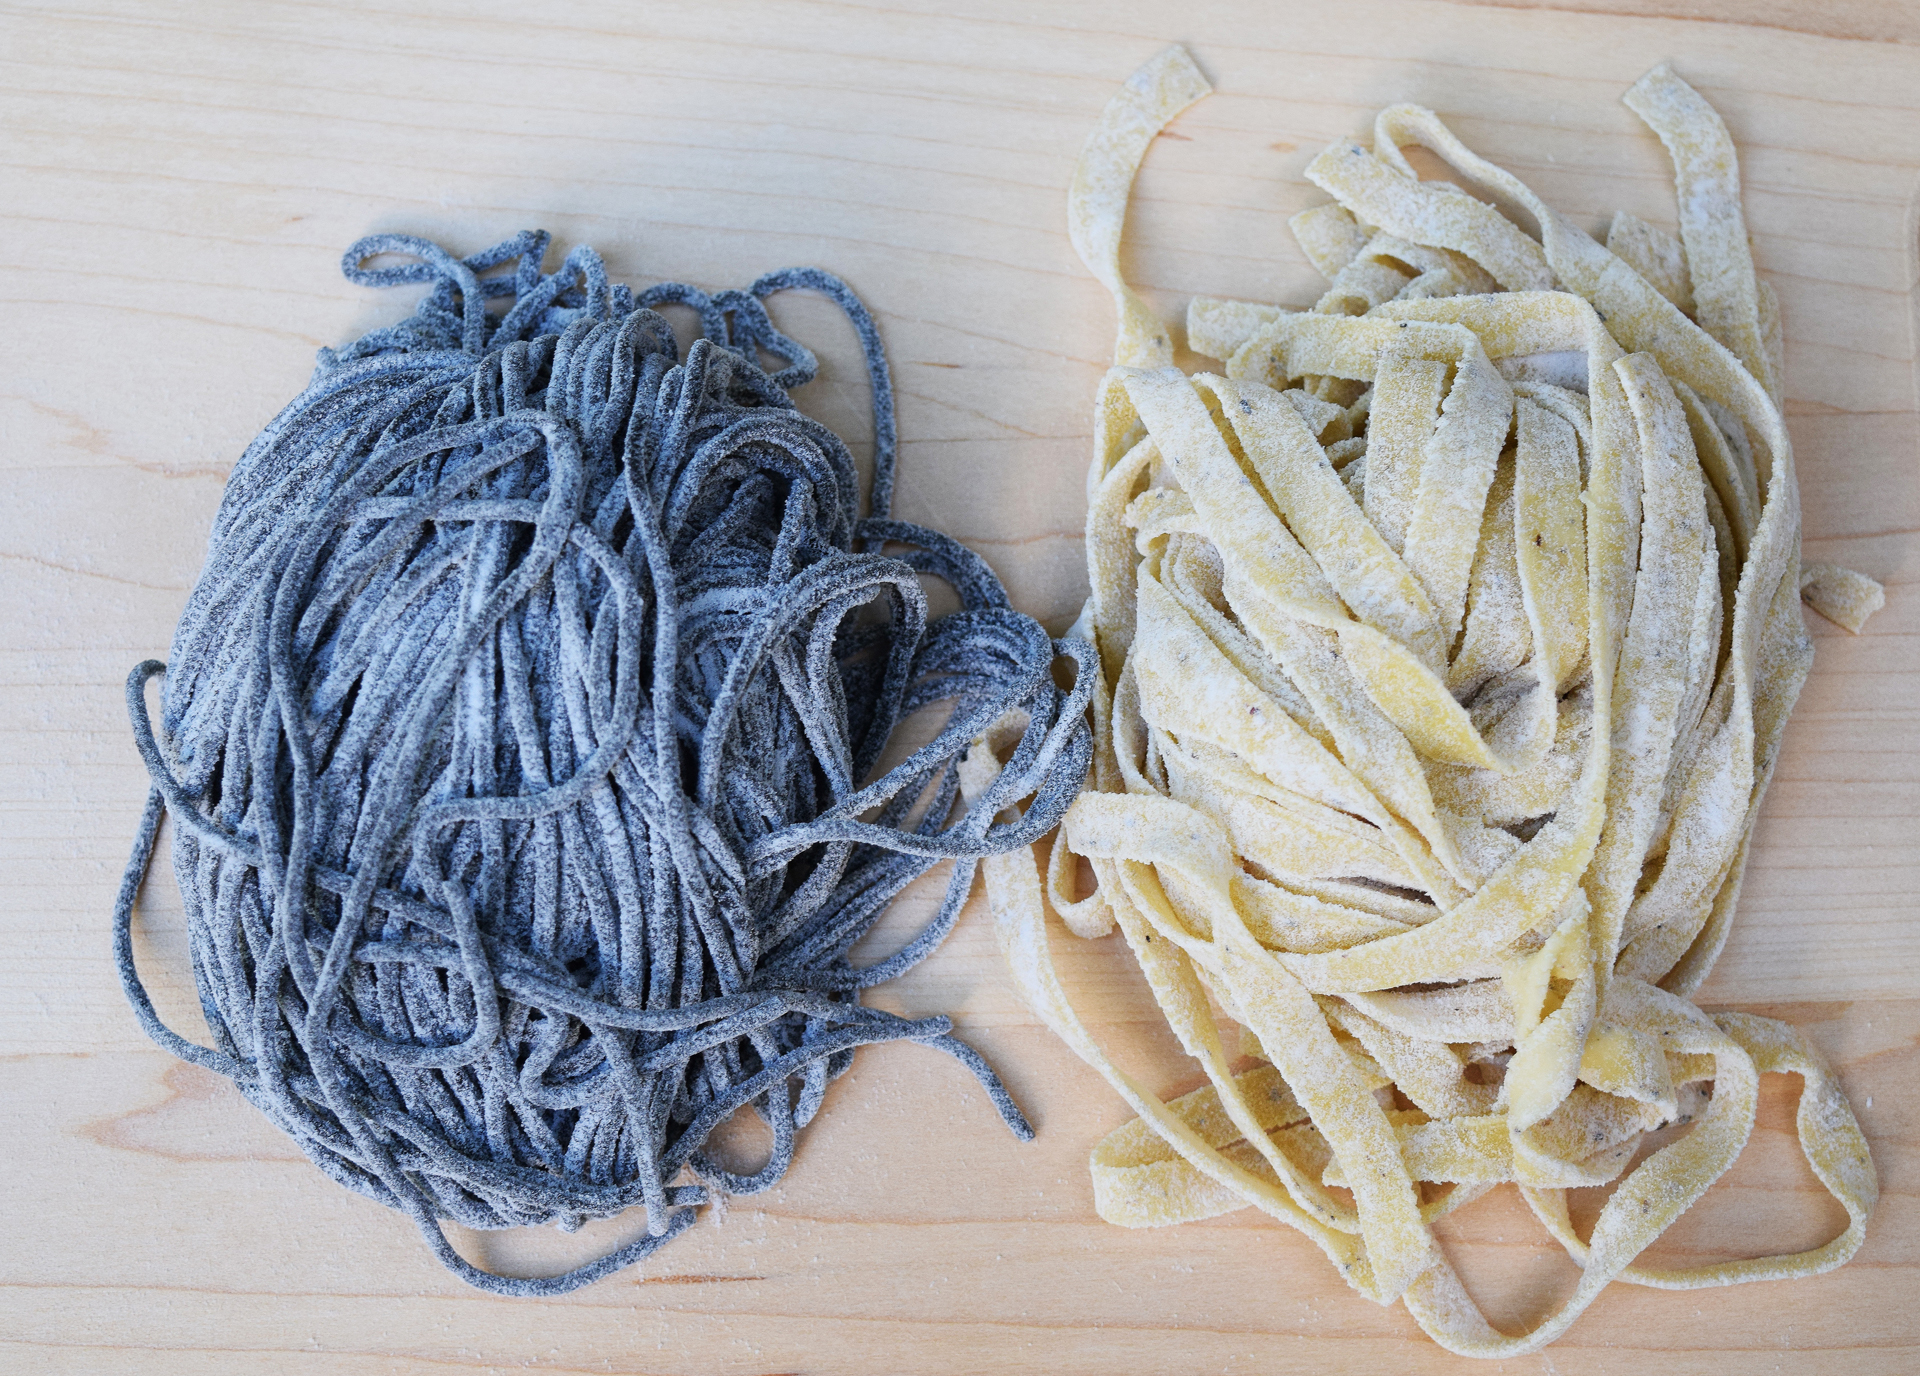 Fresh squid ink linguine and lemon pepper fettuccini from Pasta Pasta in downtown San Mateo are among one of the region's largest assortments of fresh pasta.